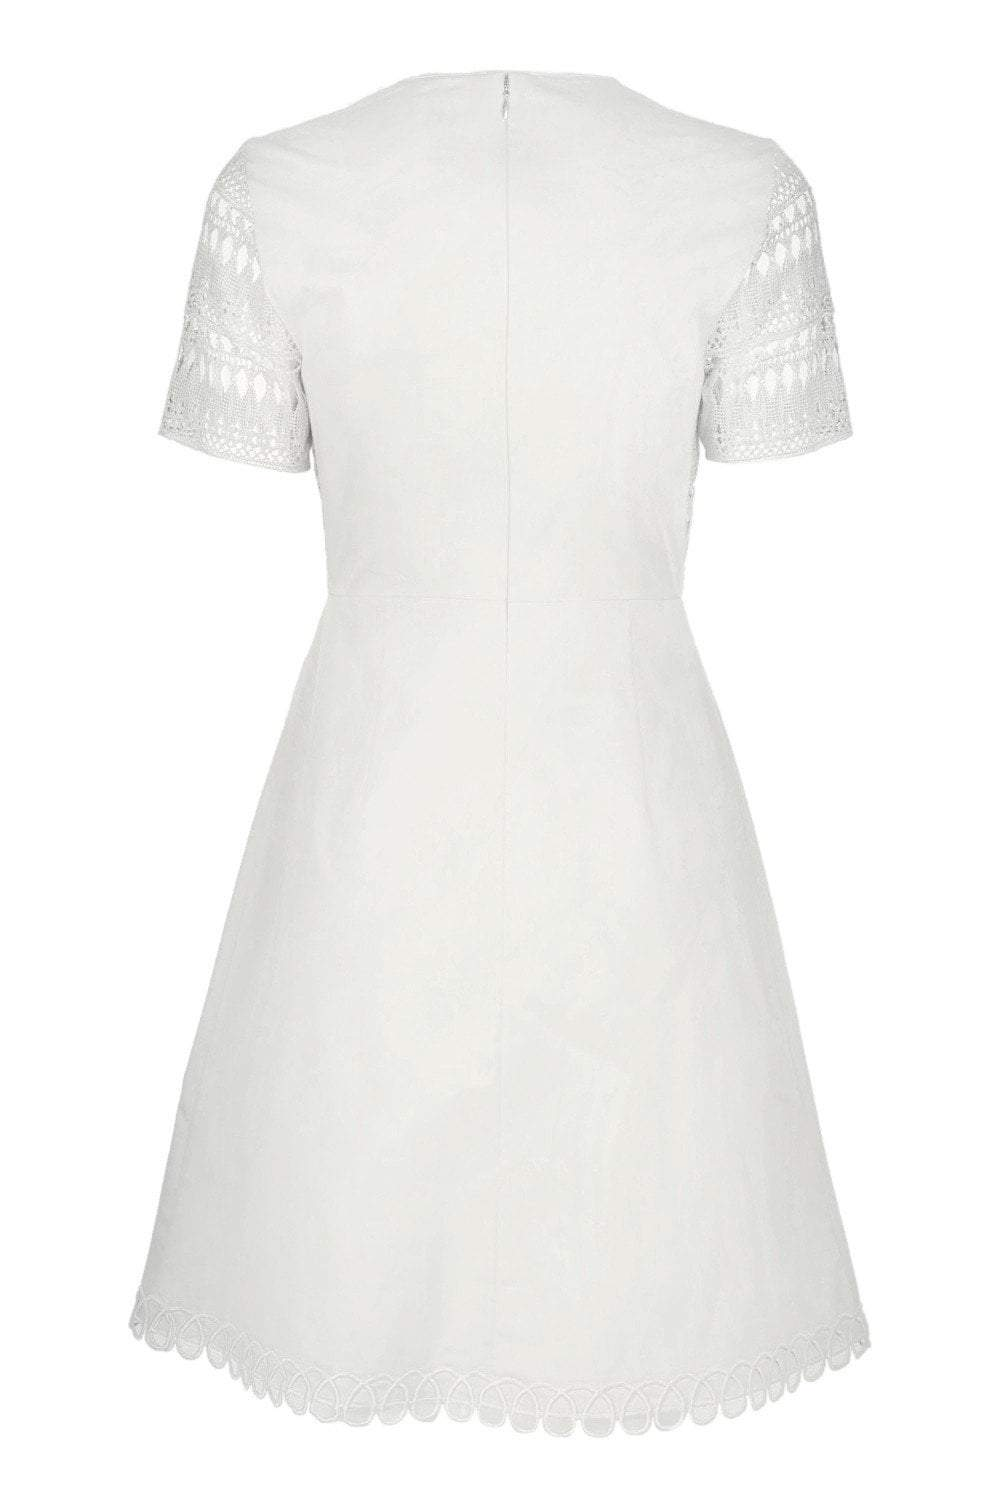 Elie Tahari - E303N607 Lace V-neck A-line Dress In White